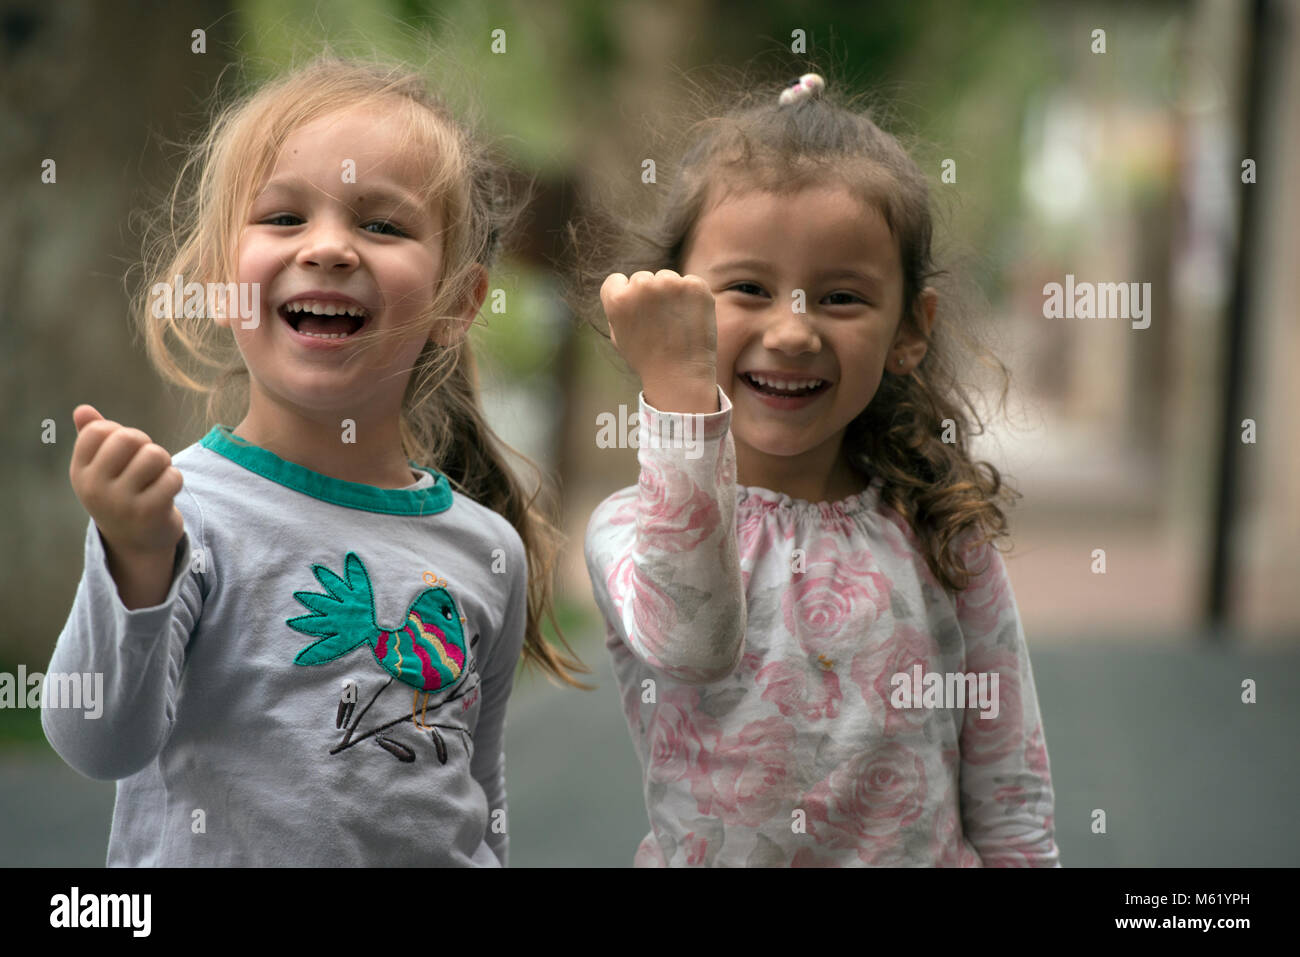 Two young girls pretending to be tough while laughing and smiling. Cafayate, Salta Province, Argentina. - Stock Image